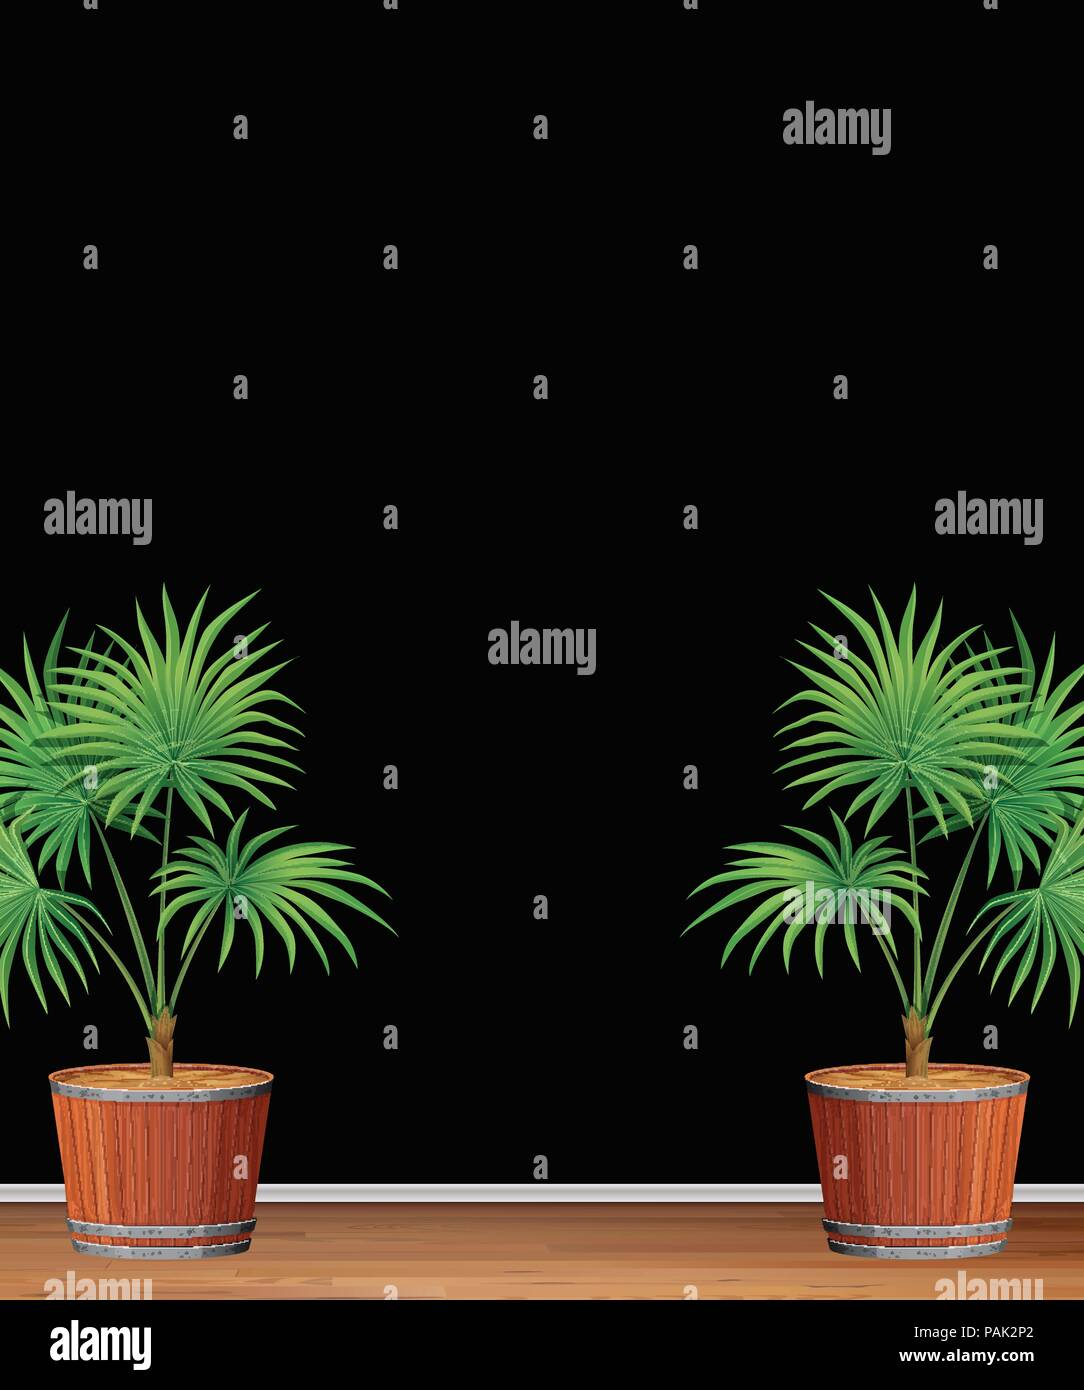 decorative indoor palm tree template illustration stock vector art